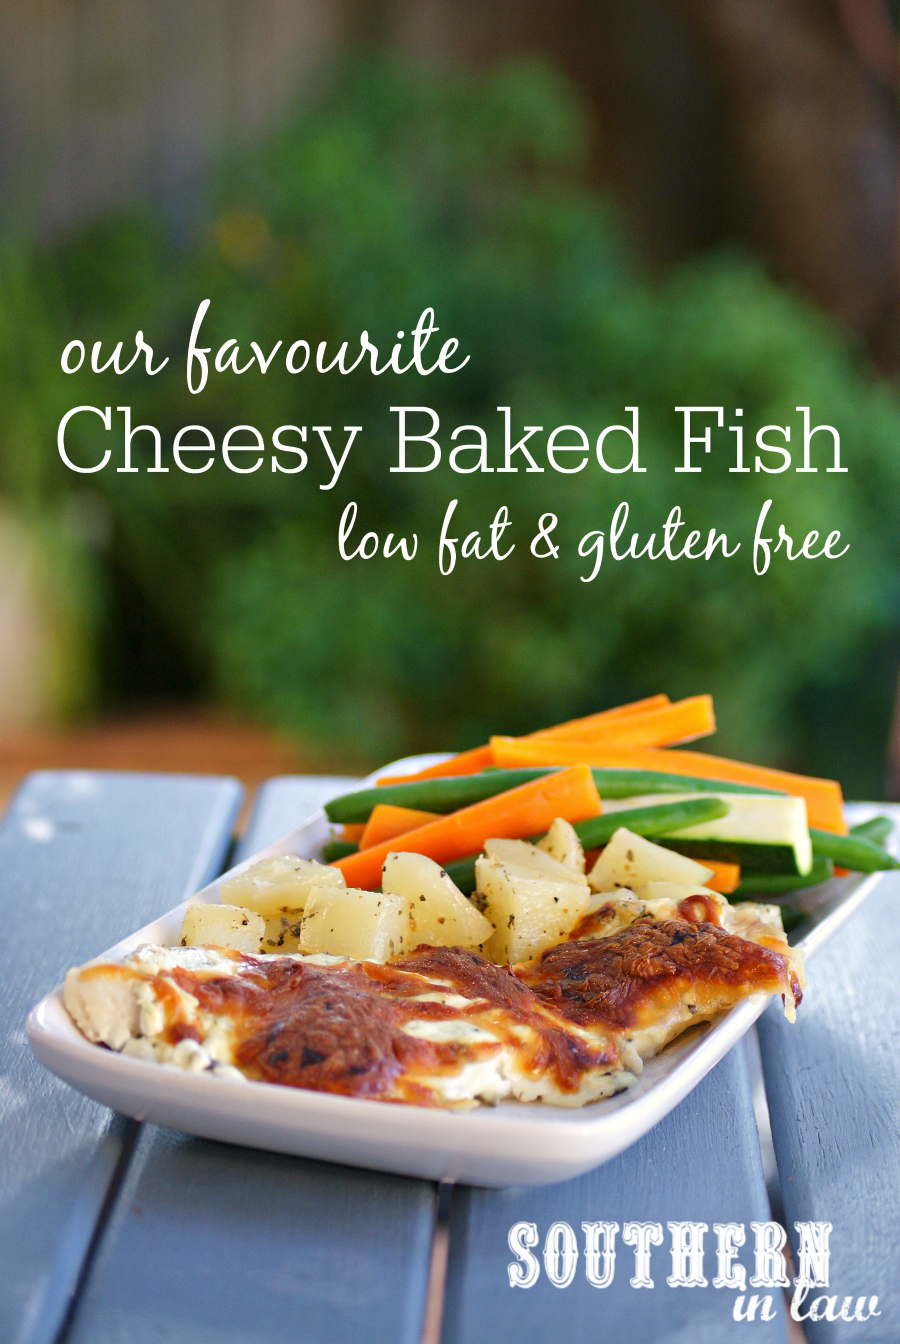 Southern in law recipe our favourite cheesy baked fish gluten our favourite healthy cheesy baked fish recipe low fat gluten free high protein forumfinder Choice Image